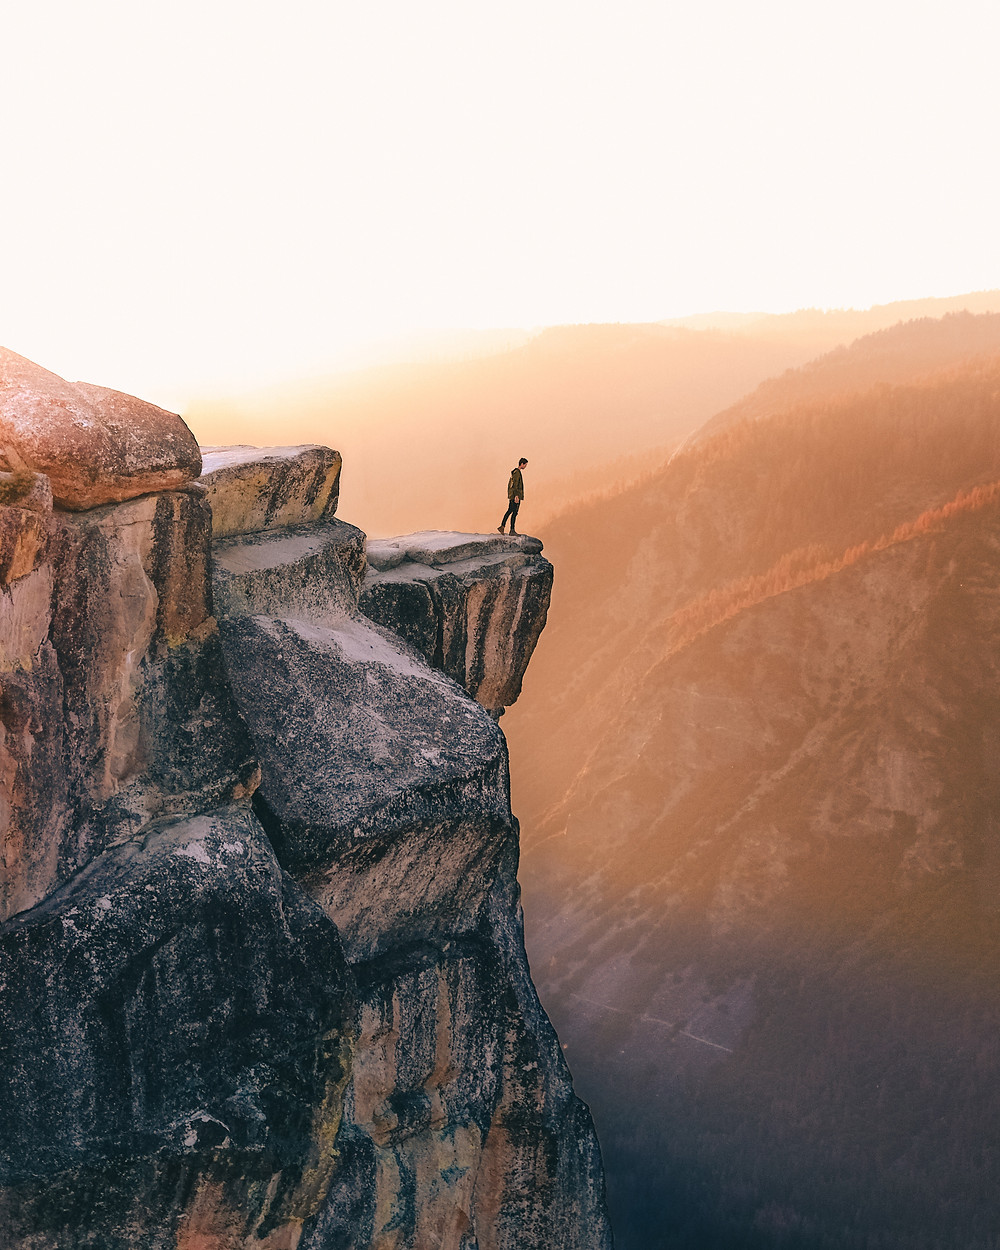 Photo: person standing on the edge of a cliff Photo by Leio McLaren on Unsplash